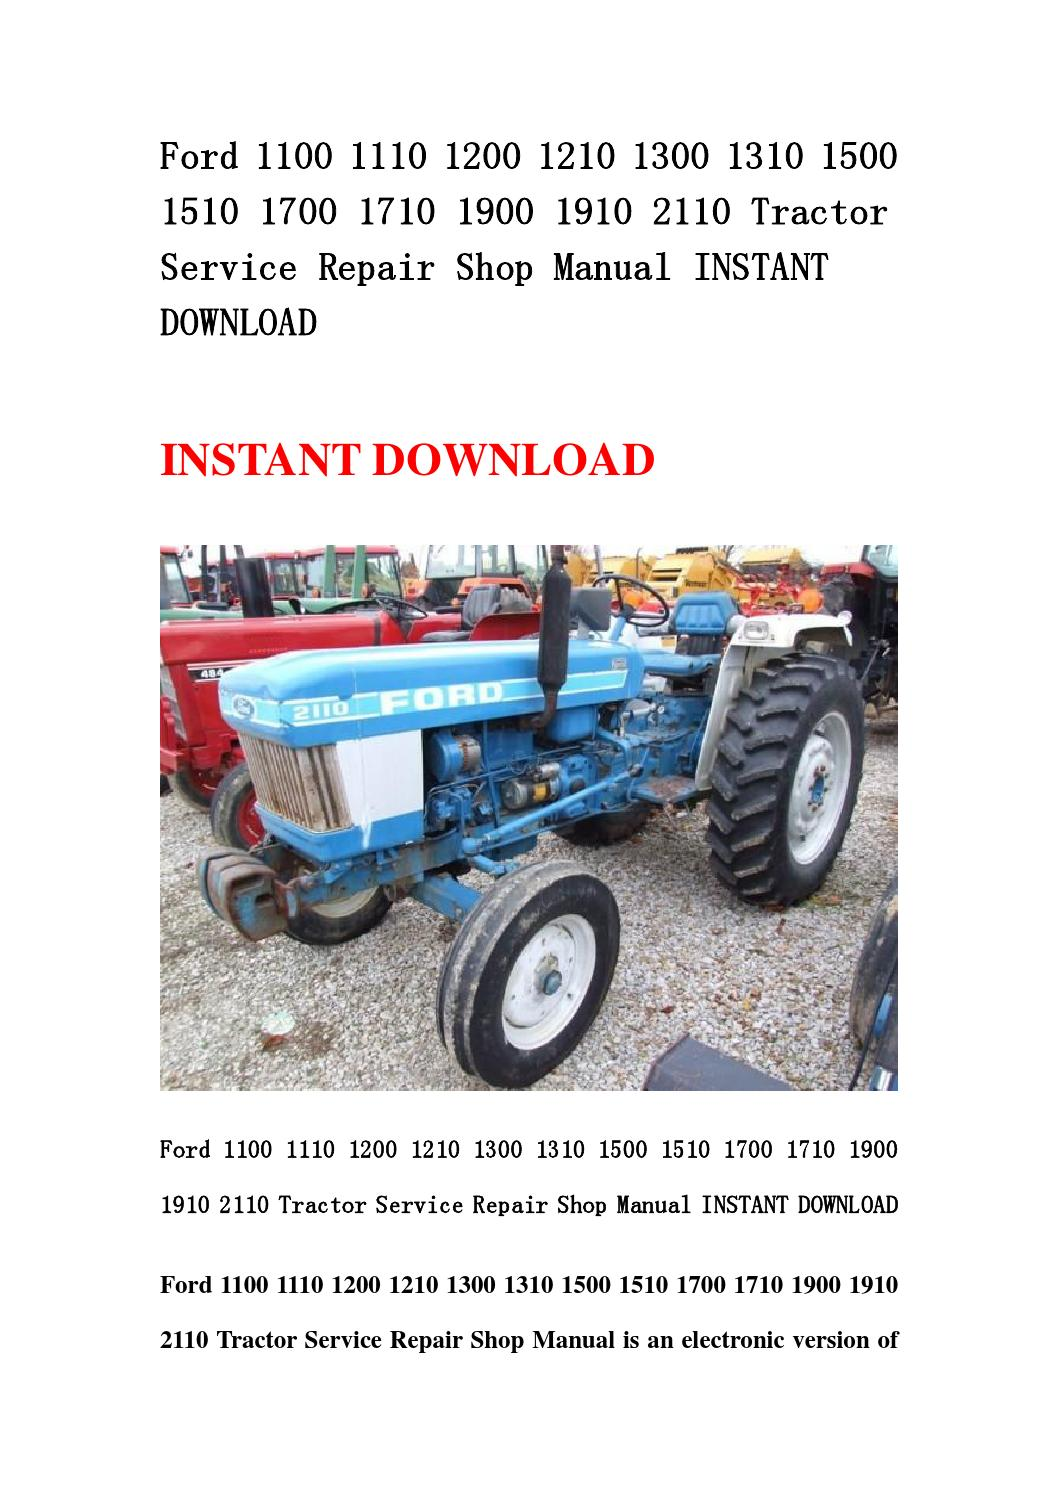 Ford 1100 1110 1200 1210 1300 1310 1500 1510 1700 1710